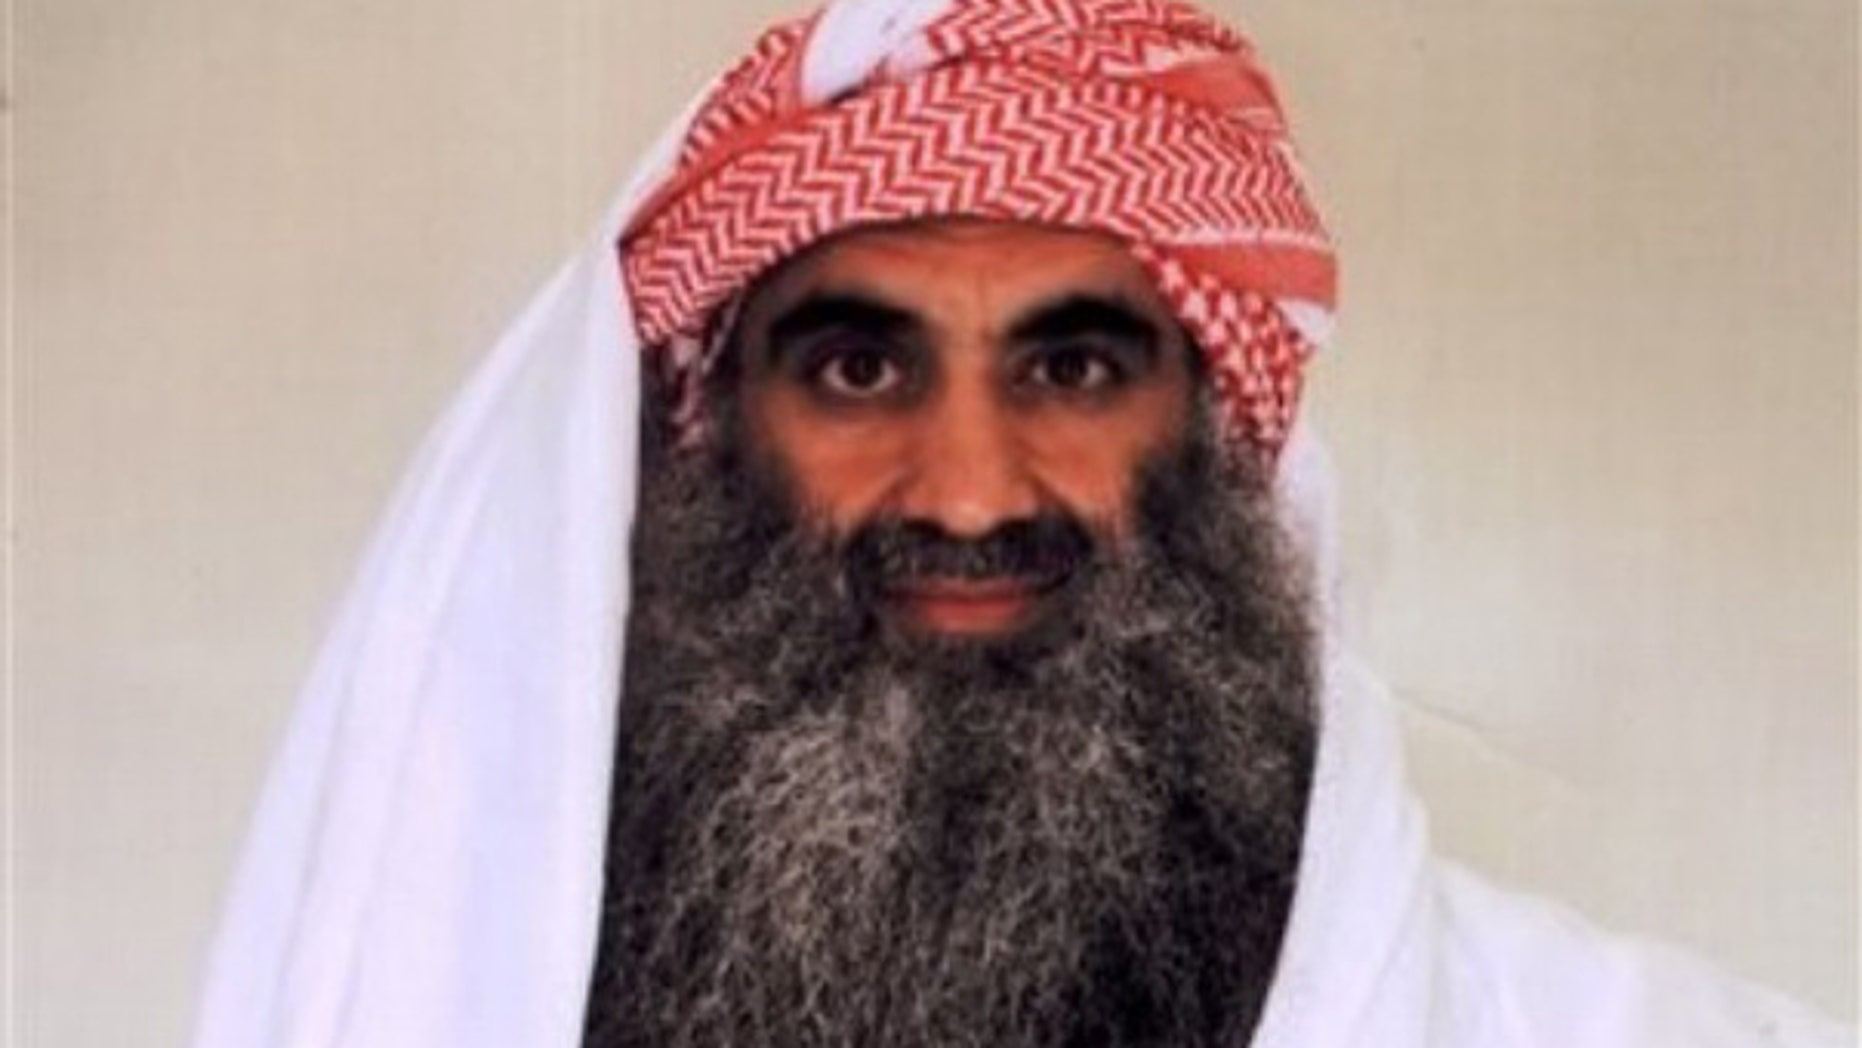 Photo purporting to show Khalid Sheik Mohammed in detention at Guantanamo Bay, Cuba. (AP)